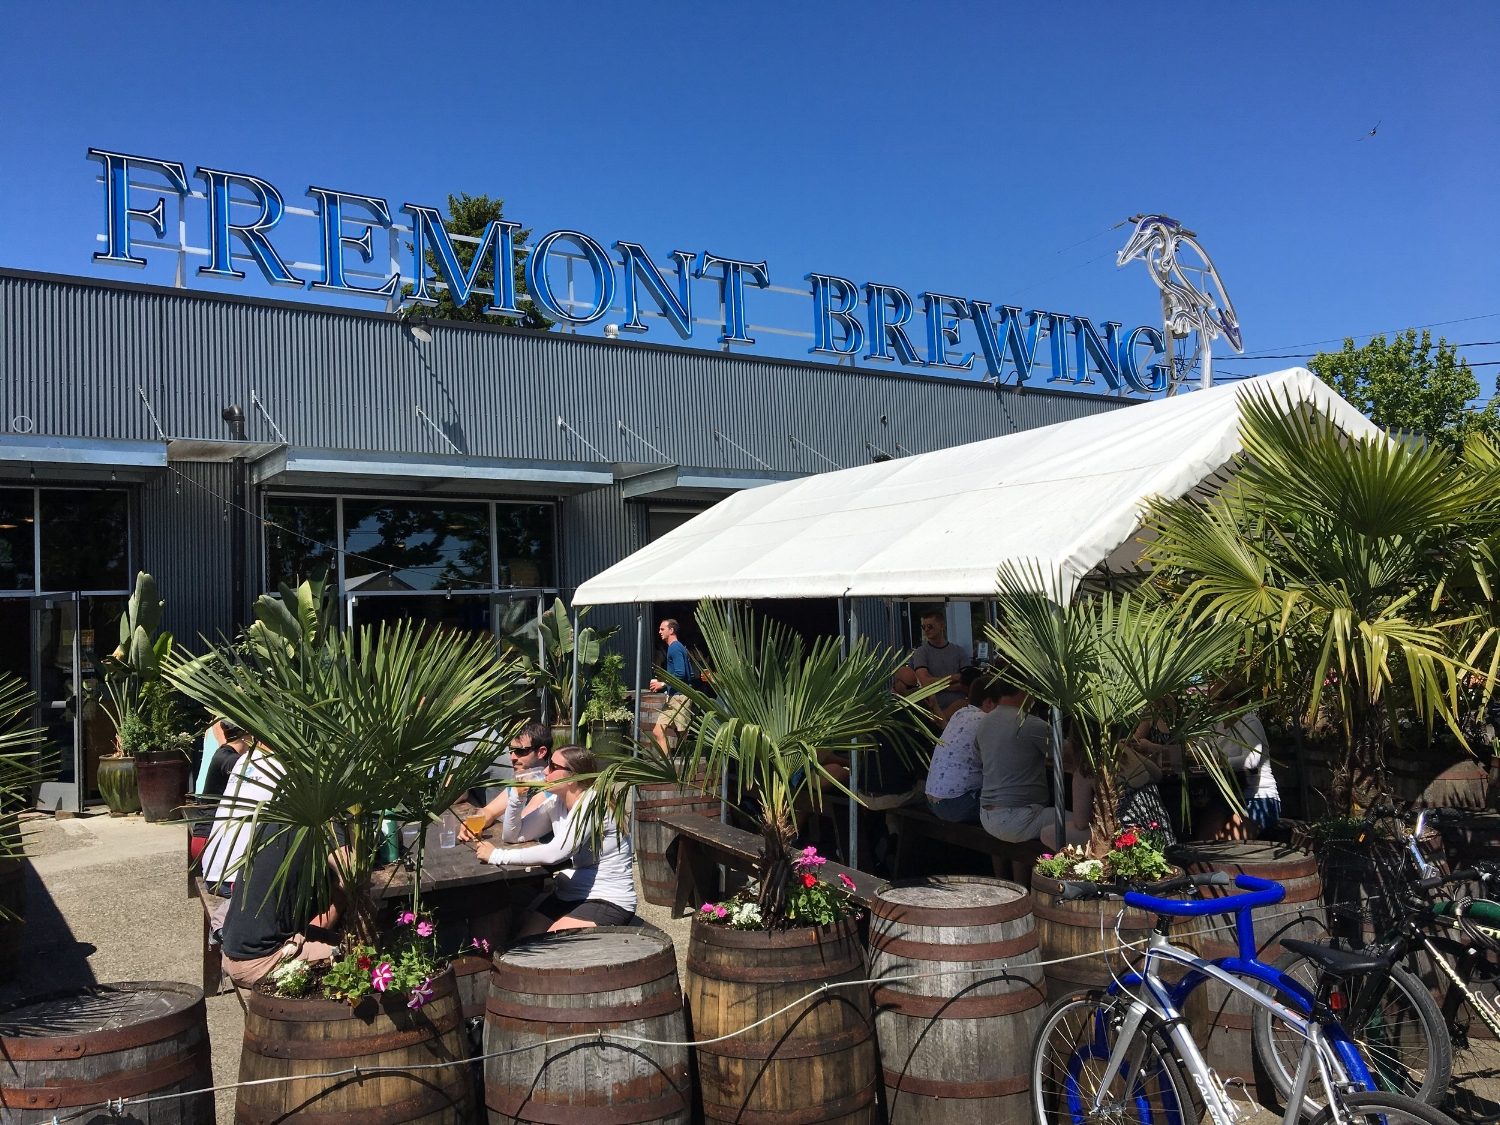 FREMONT BREWING, SEATTLE